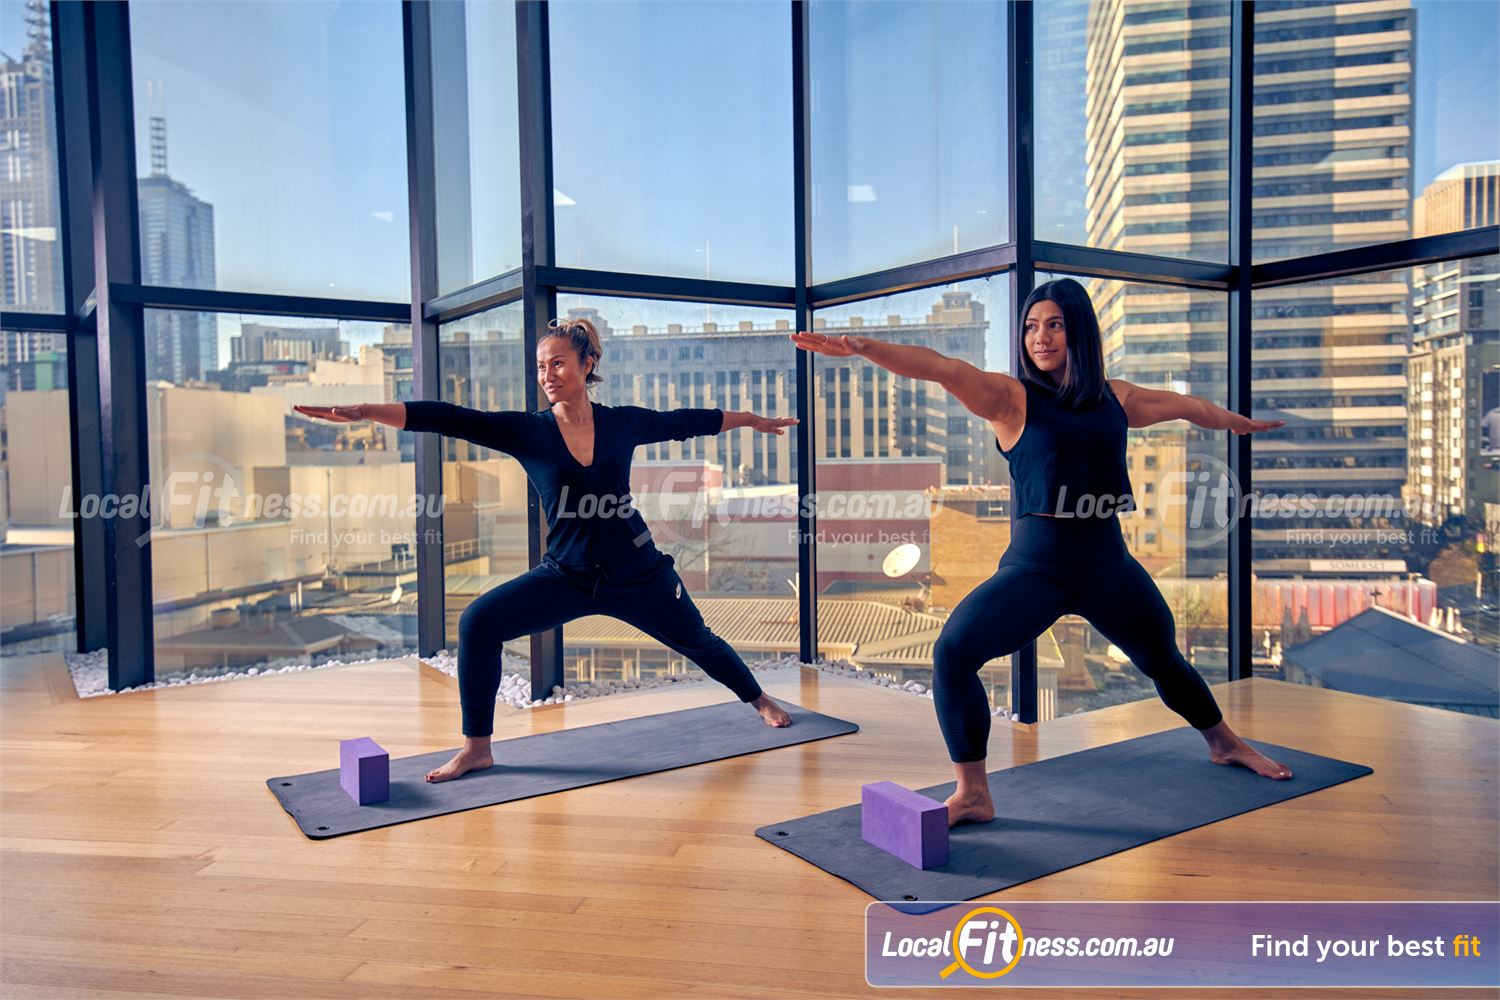 Fitness First Melbourne Central Platinum Near East Melbourne Popular classes inc. Melbourne Yoga, Pilates and more.